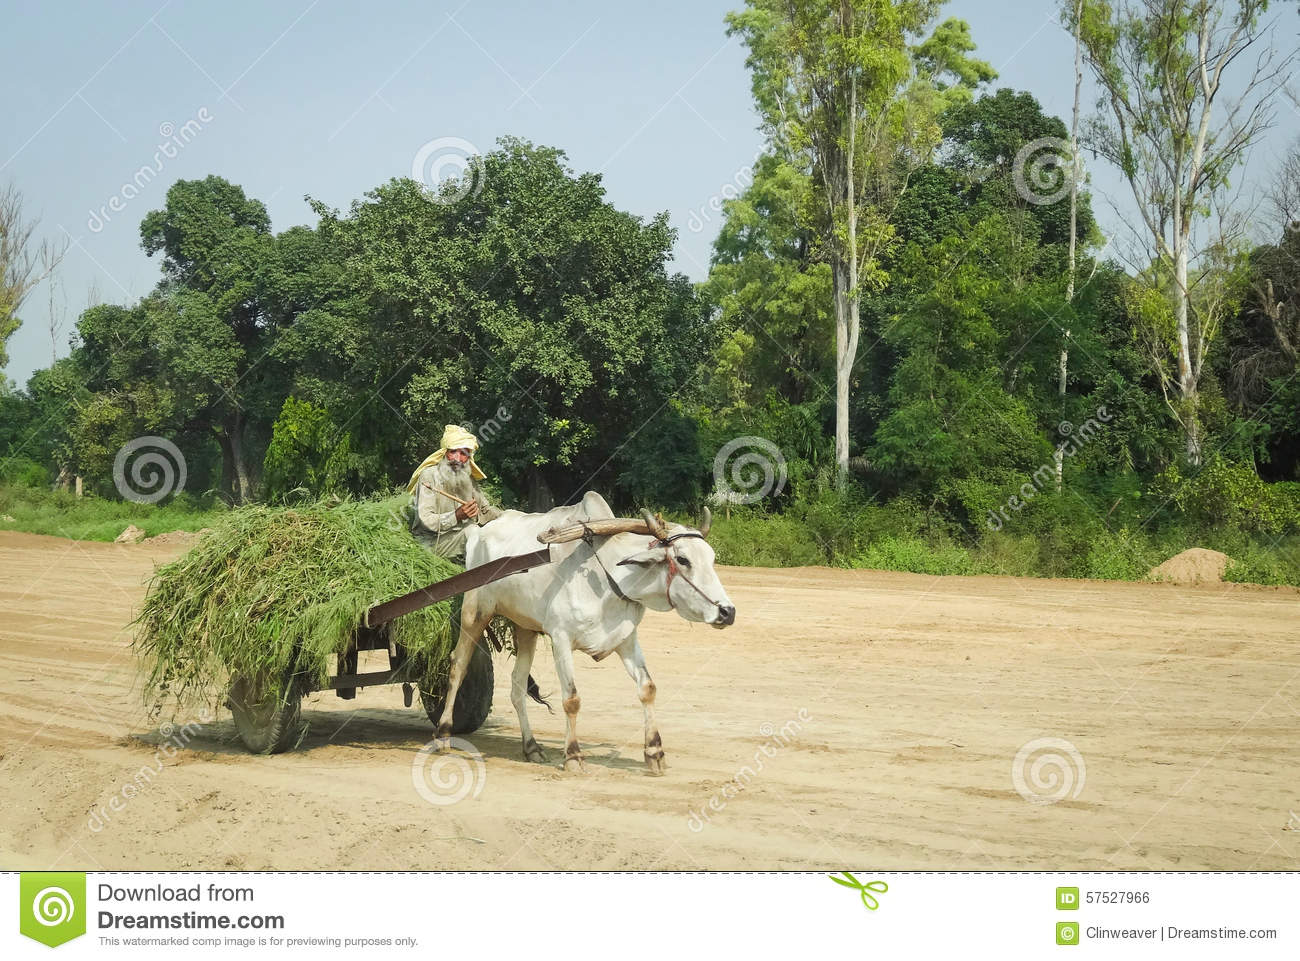 Oxcart i Indien